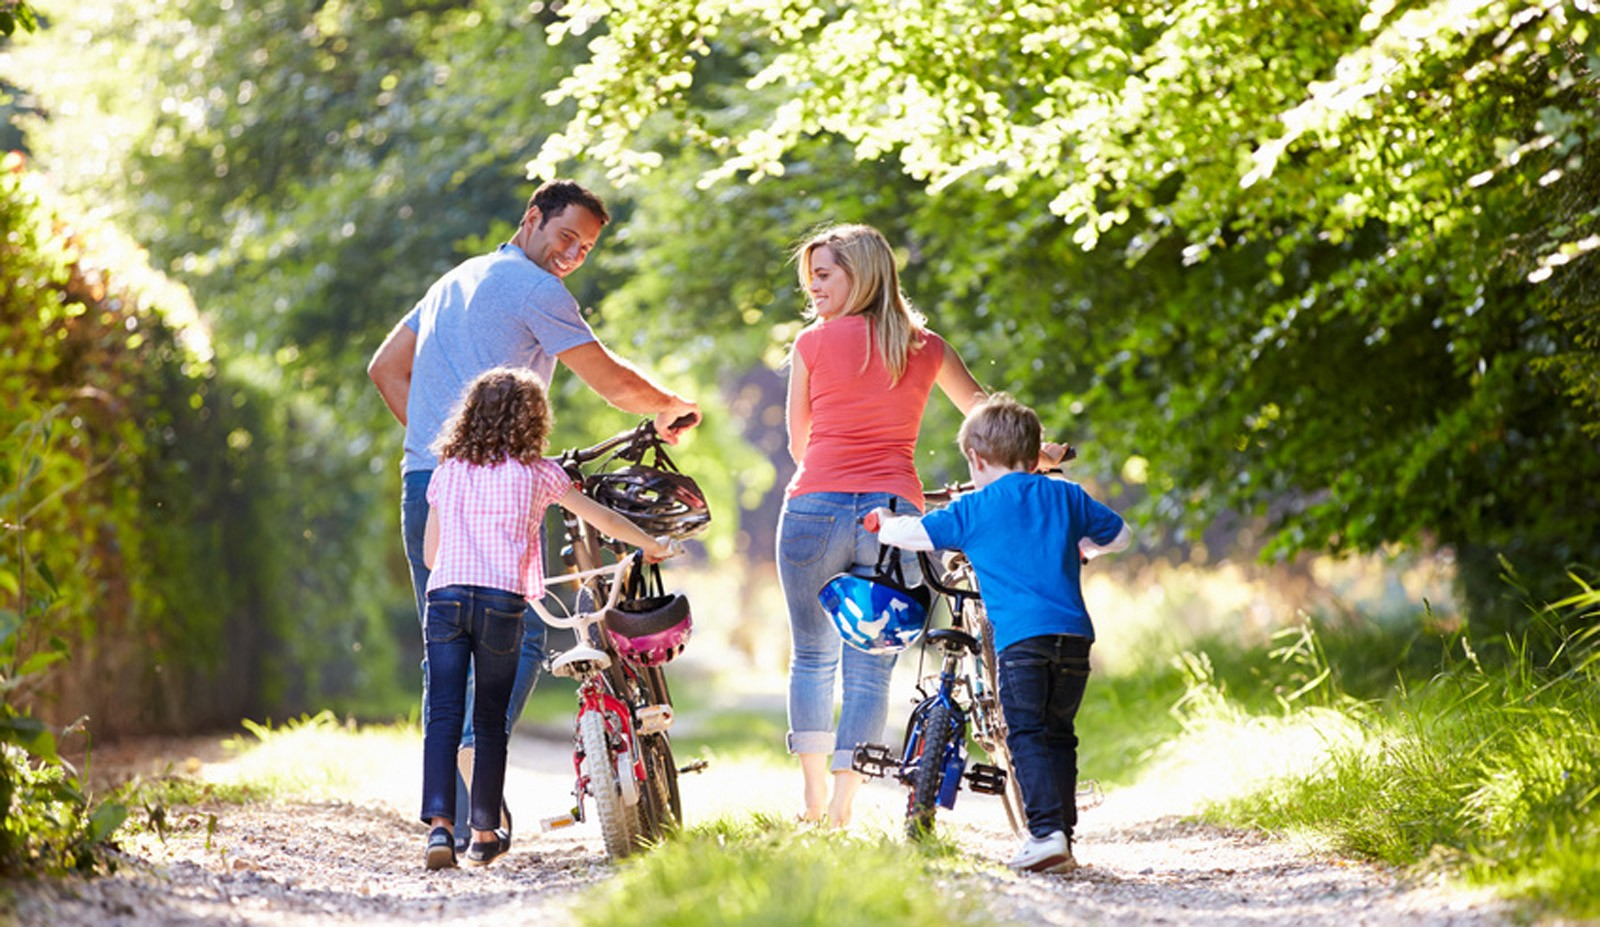 Heed cycling training company BikeRight!'s advice on creating the perfect family cycling ride